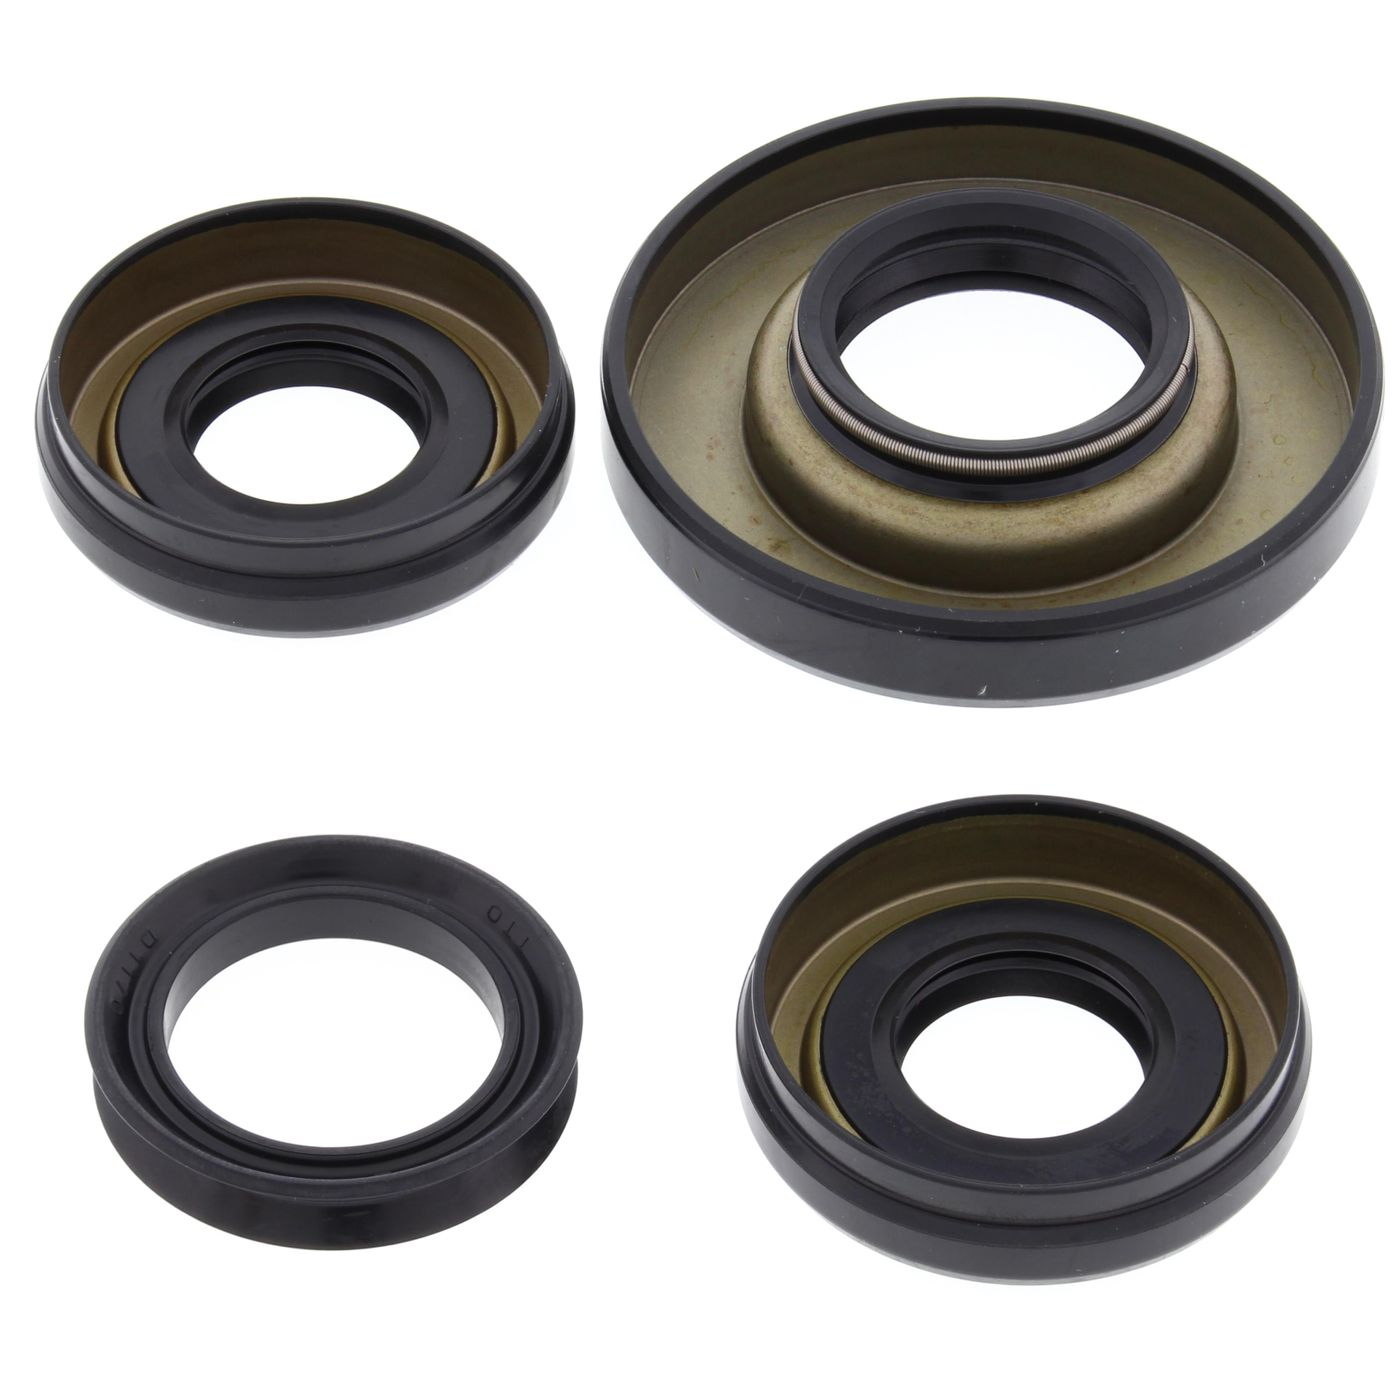 Wrp Diff Seal Kits - WRP252006-5 image